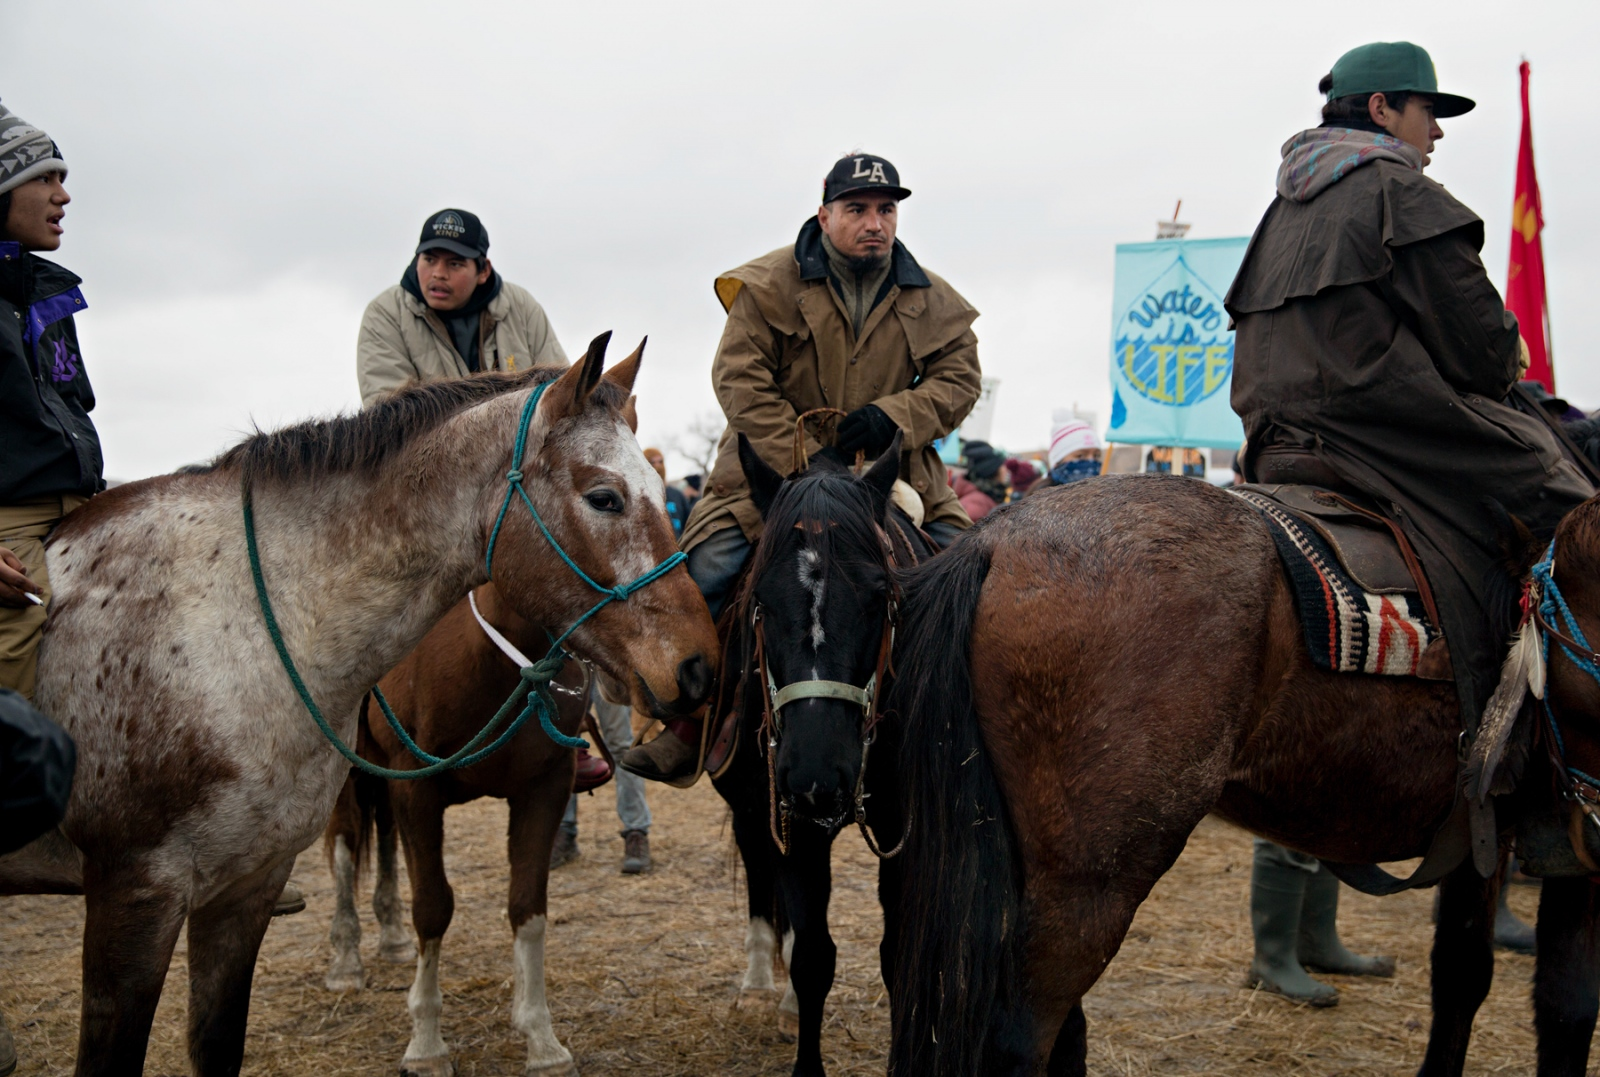 A group of riders gather around near a police stand-off on the Thanksgiving Day 2016.